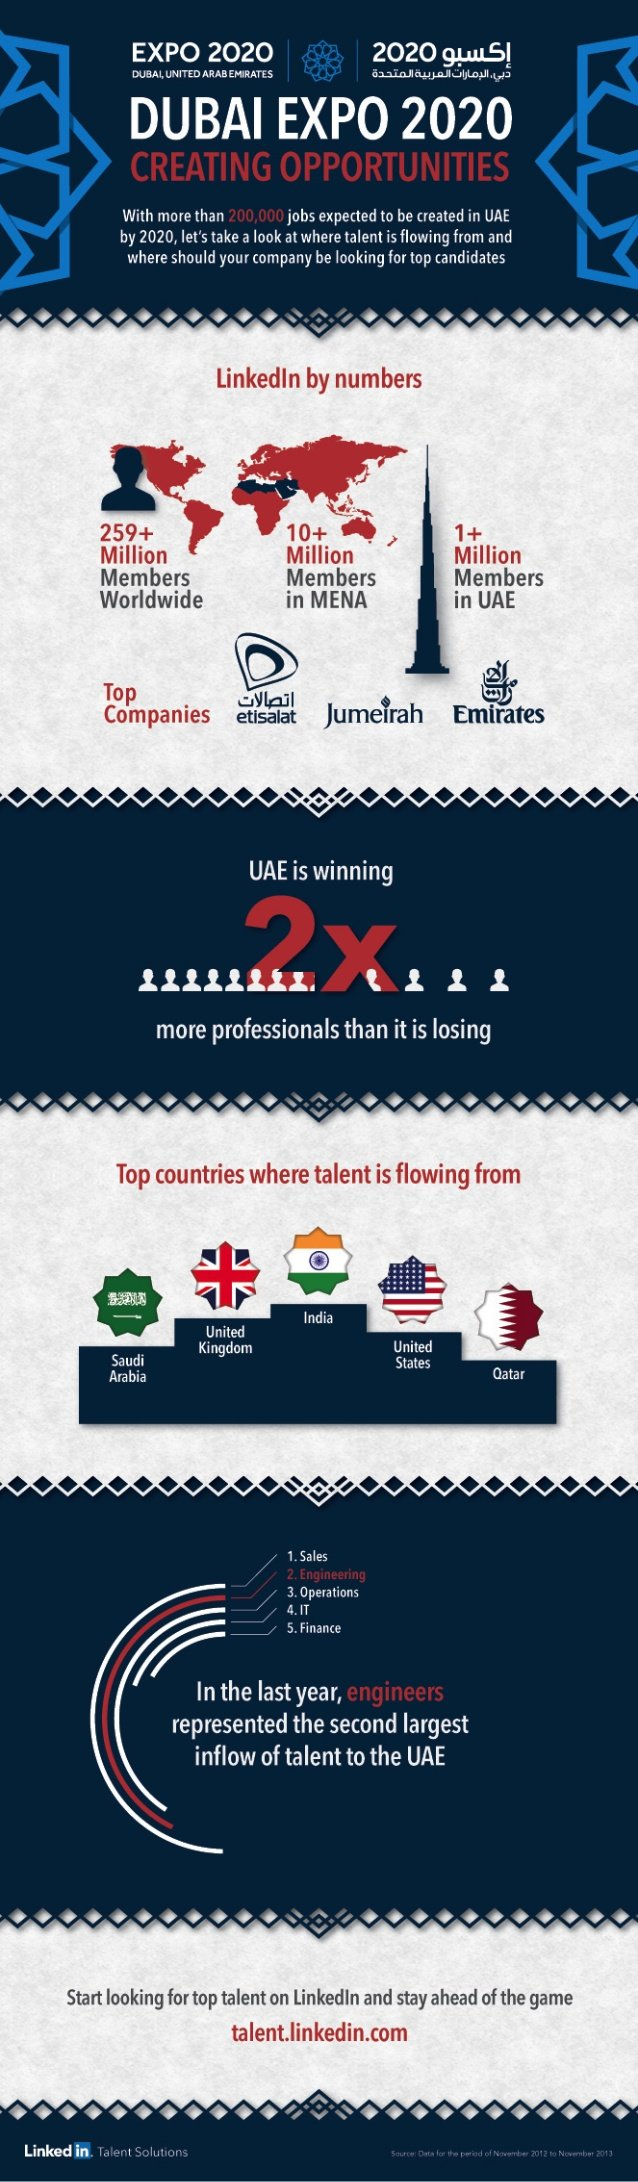 Dubai #Expo2020: The UAE as the Next Hot Destination for Talents #Infographic